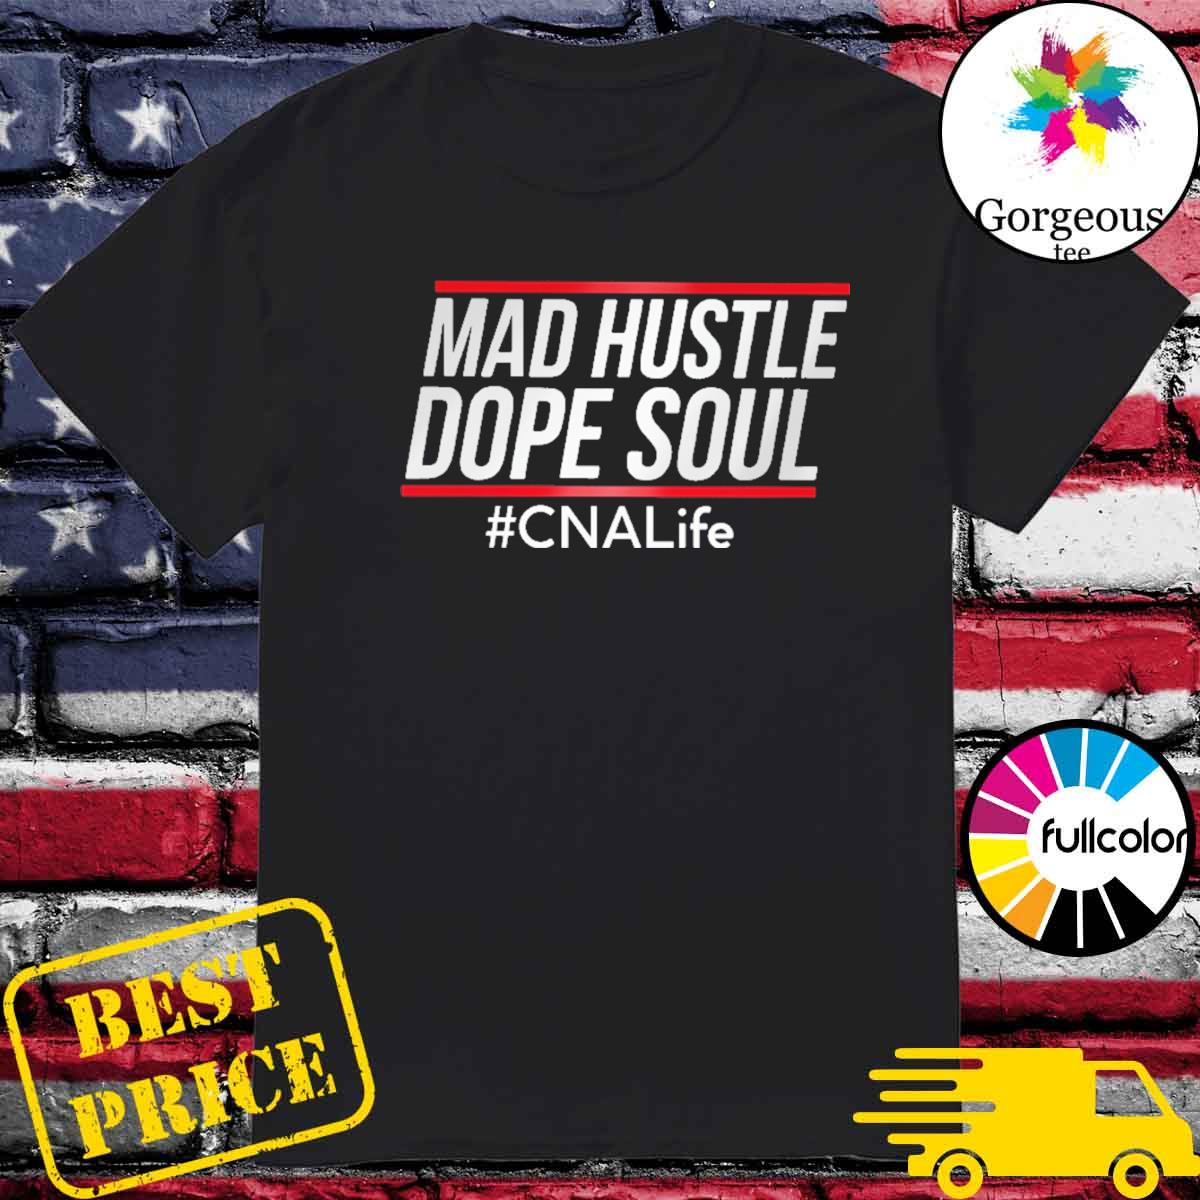 Mad hustle dope soul #CNAlife shirt